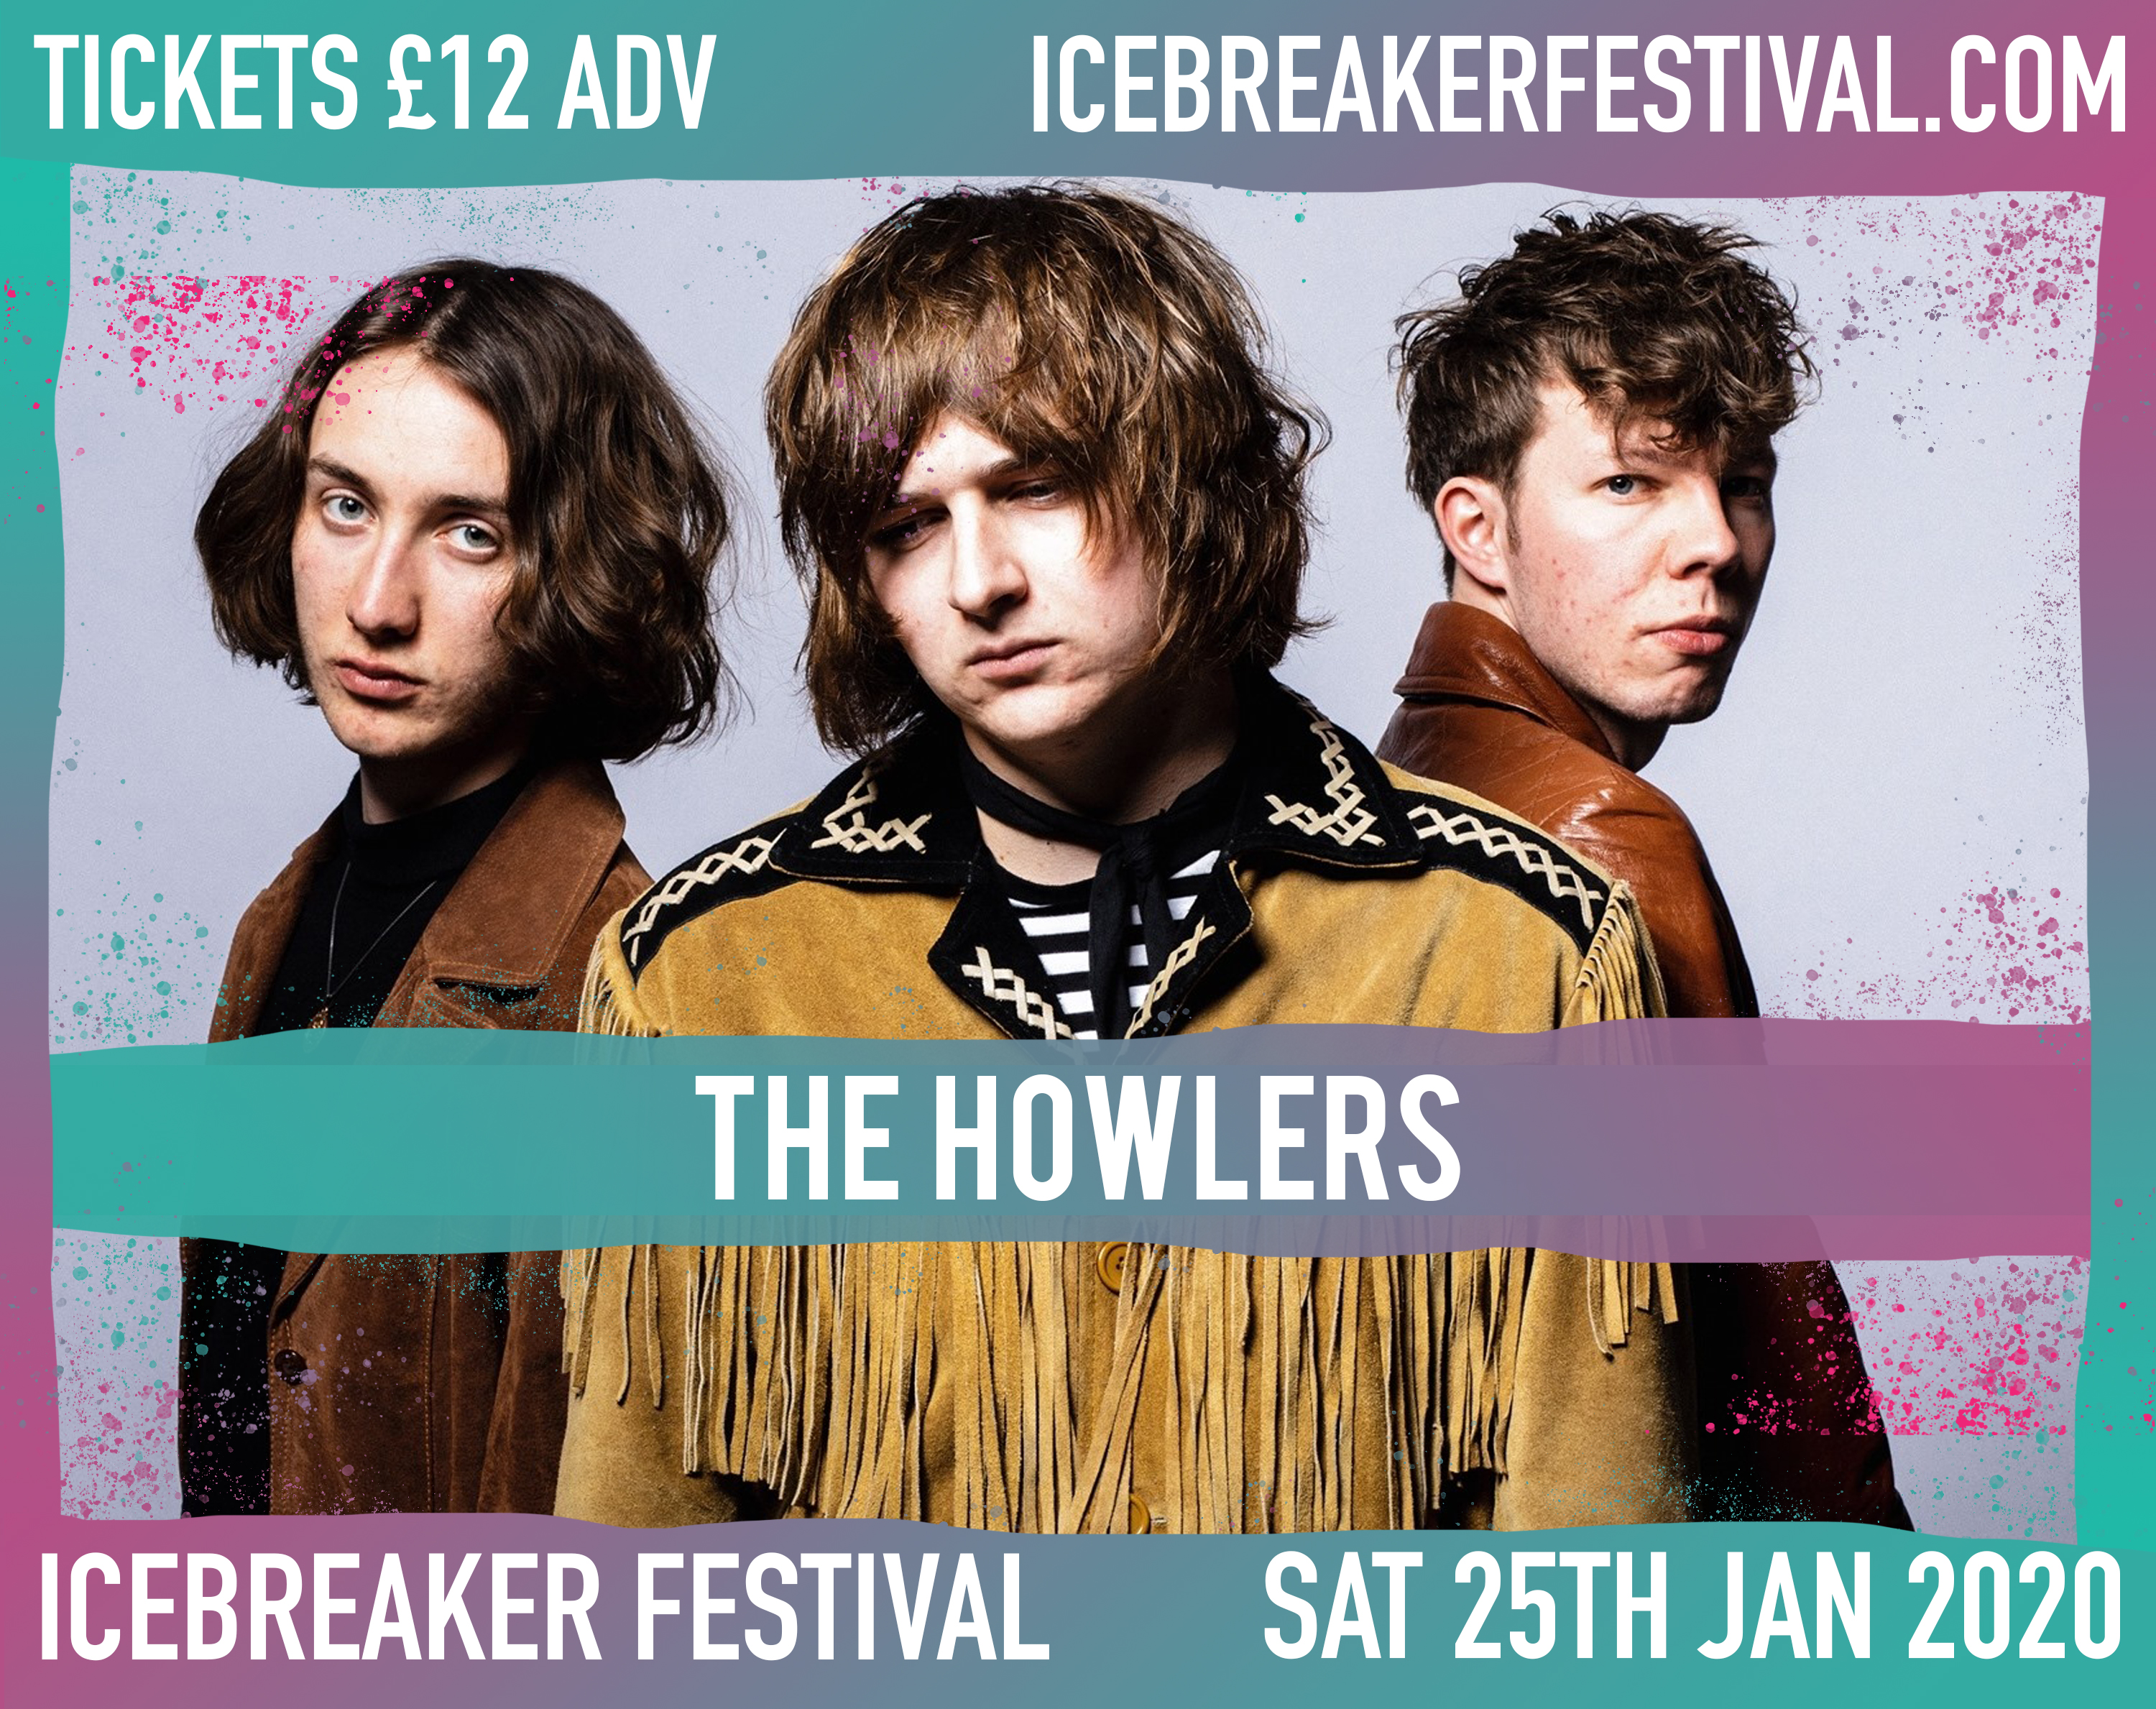 The Howlers Pic